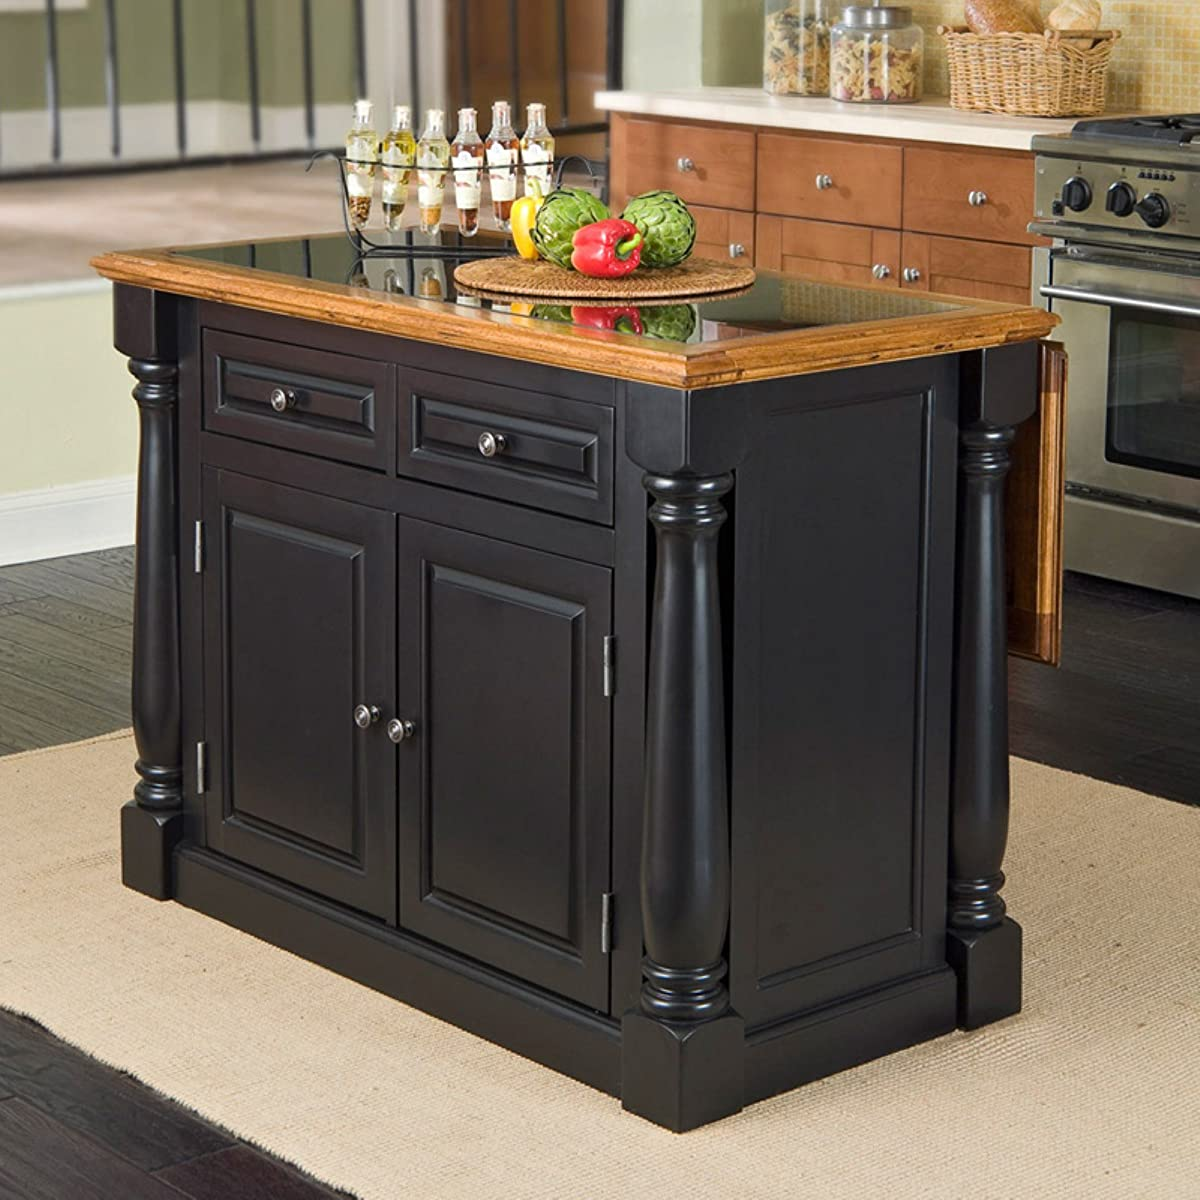 monarch kitchen island rv faucets home styles slide out leg with